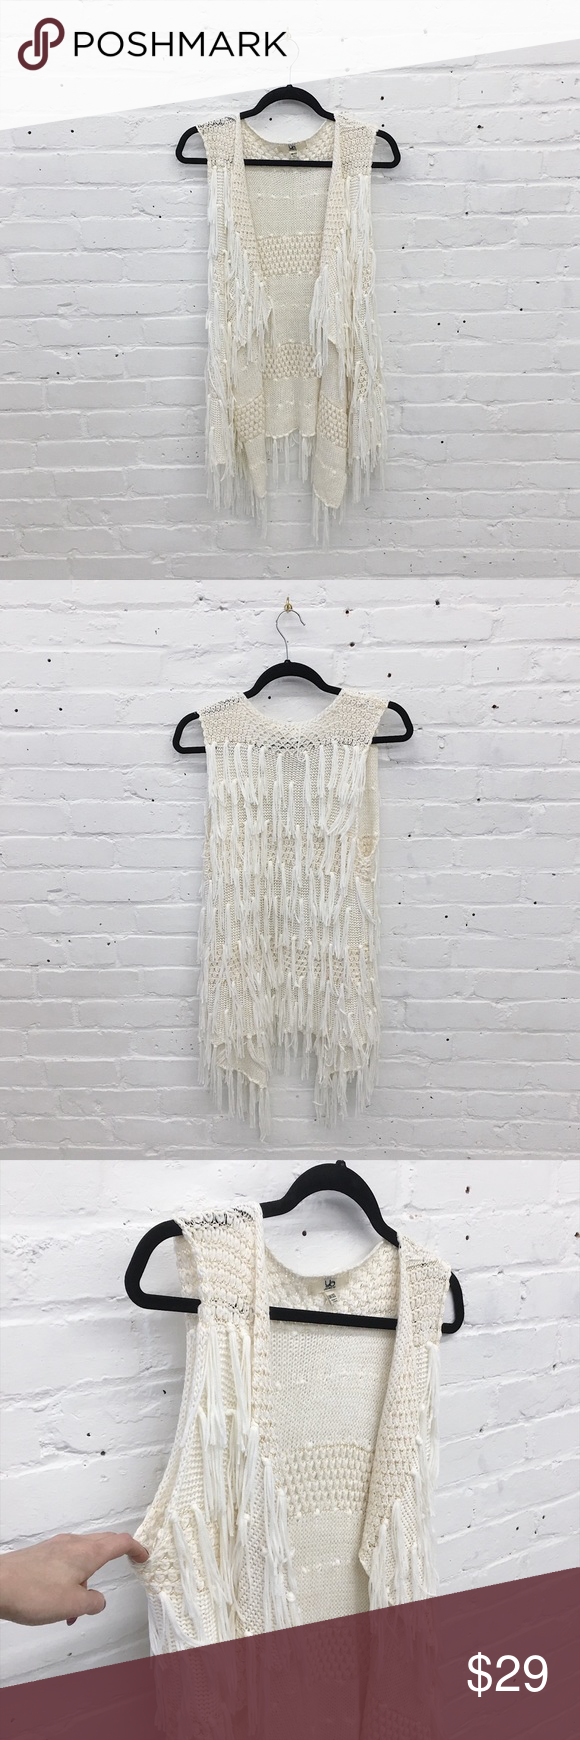 "Shaggy Fringe Vest Awesome shaggy fringe vest made of super soft stretchy knit. Looks festive-ready with cutoffs and booties!  🔹one size  🔹new without tags  🔹 31"" length   👉🏼 Willing to negotiate with serious buyers via the offer button!  👉🏼 Bundle with one more item for an instant 20% off! 👉🏼 Sorry, no try-ons or trades. Jackets & Coats Vests"